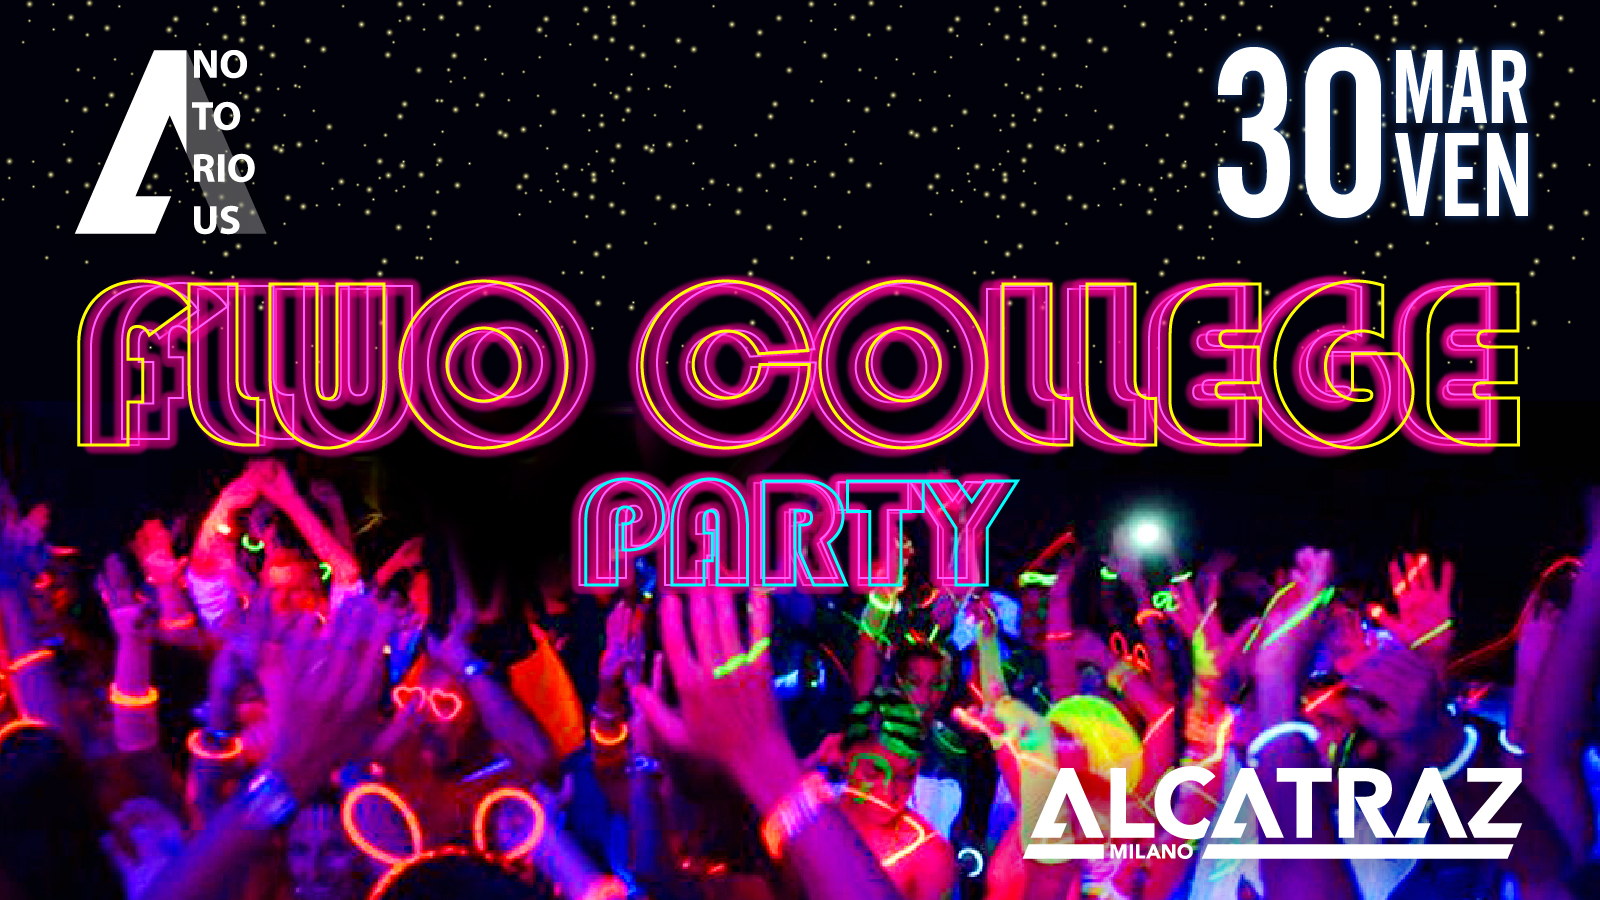 fluo college evento